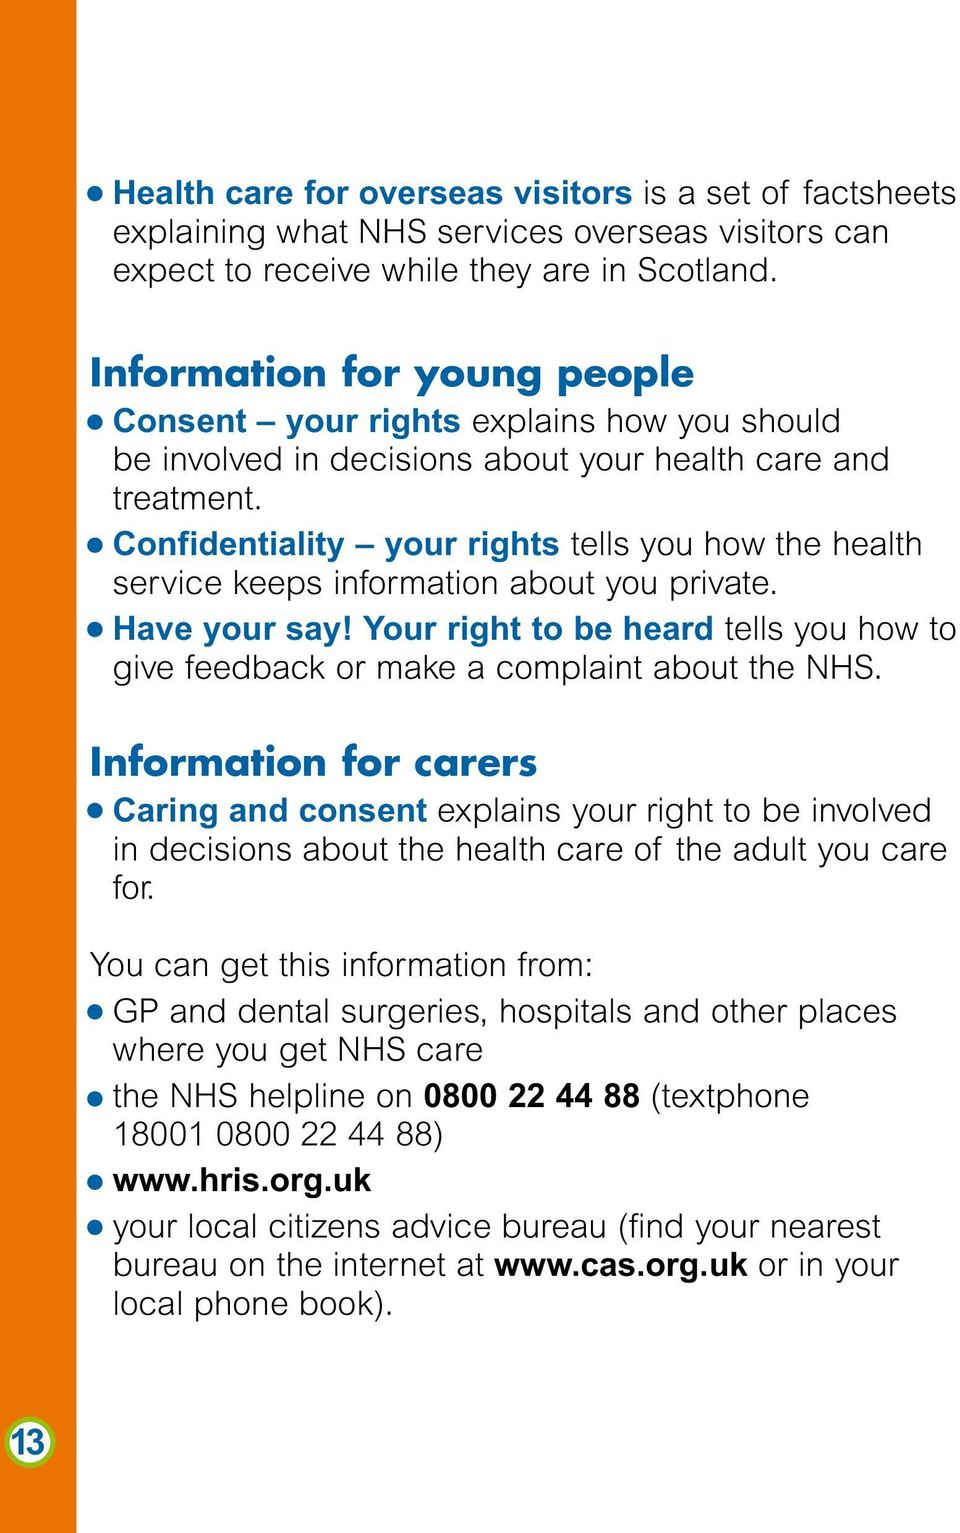 Confidentiality your rights tells you how the health service keeps information about you private. Have your say!